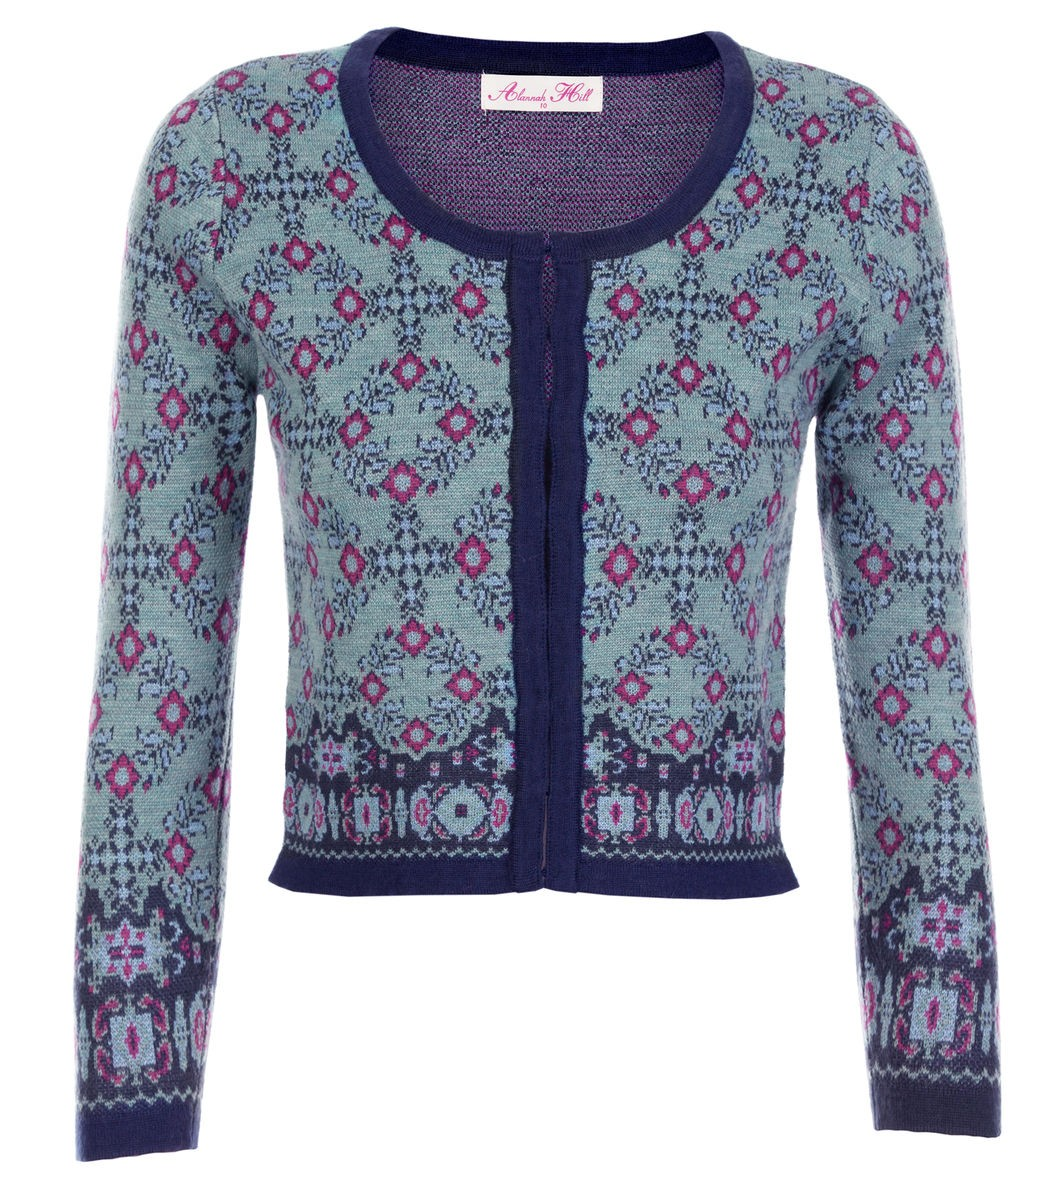 The Orient Express Cardi